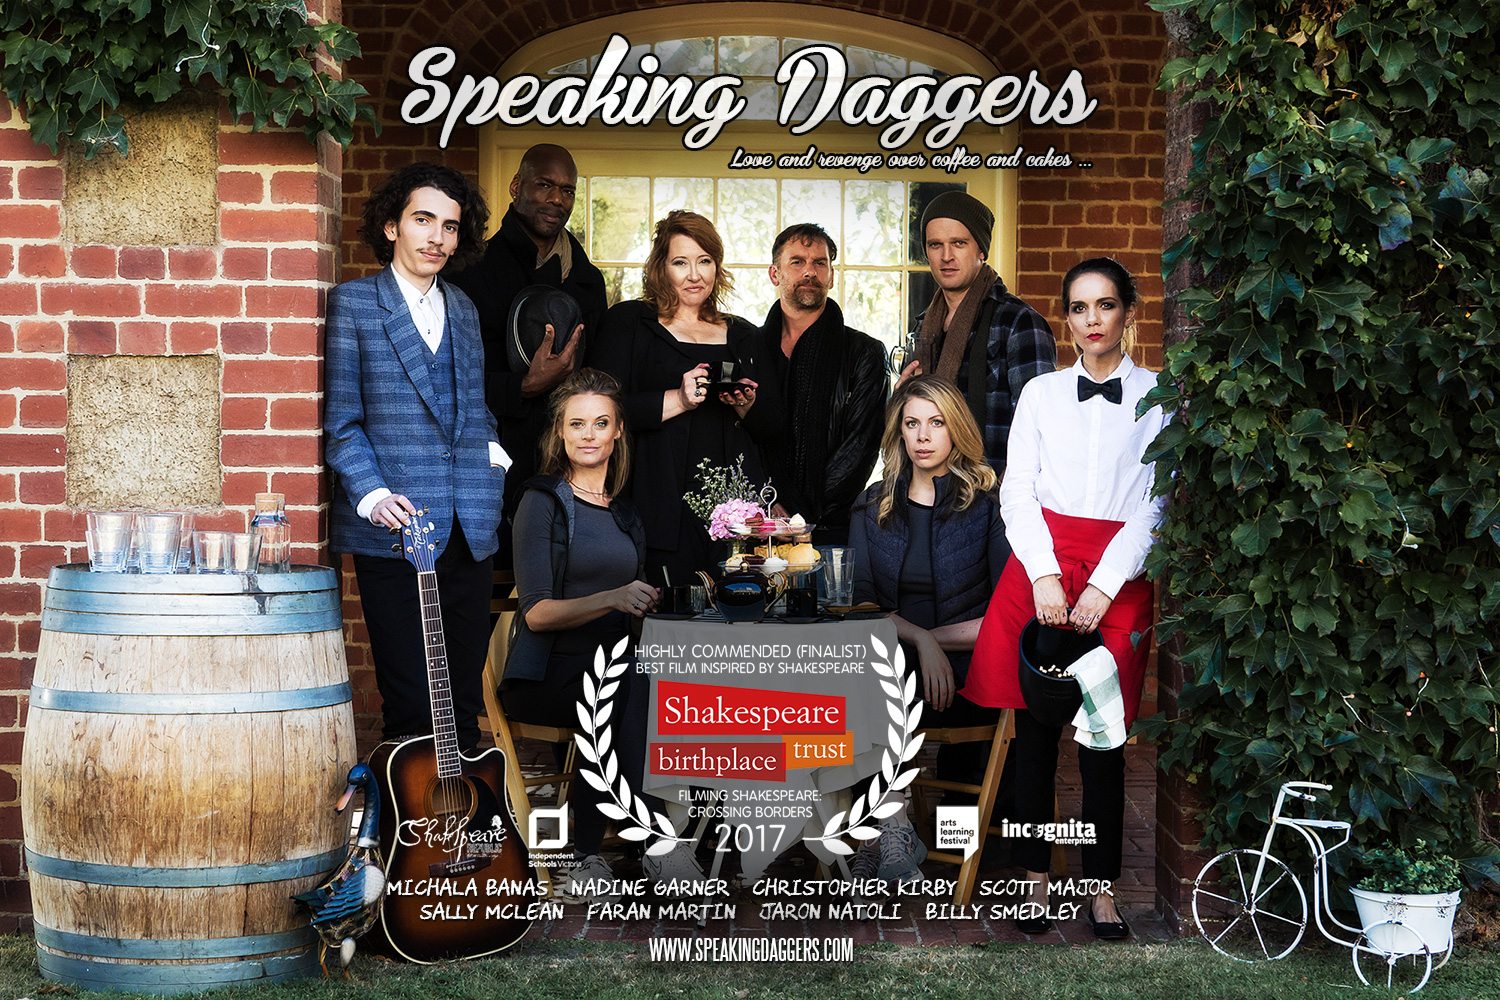 Speaking Daggers officially selected for the Shakespeare Birthplace Trust's Shakespeare Film Festival in UK!